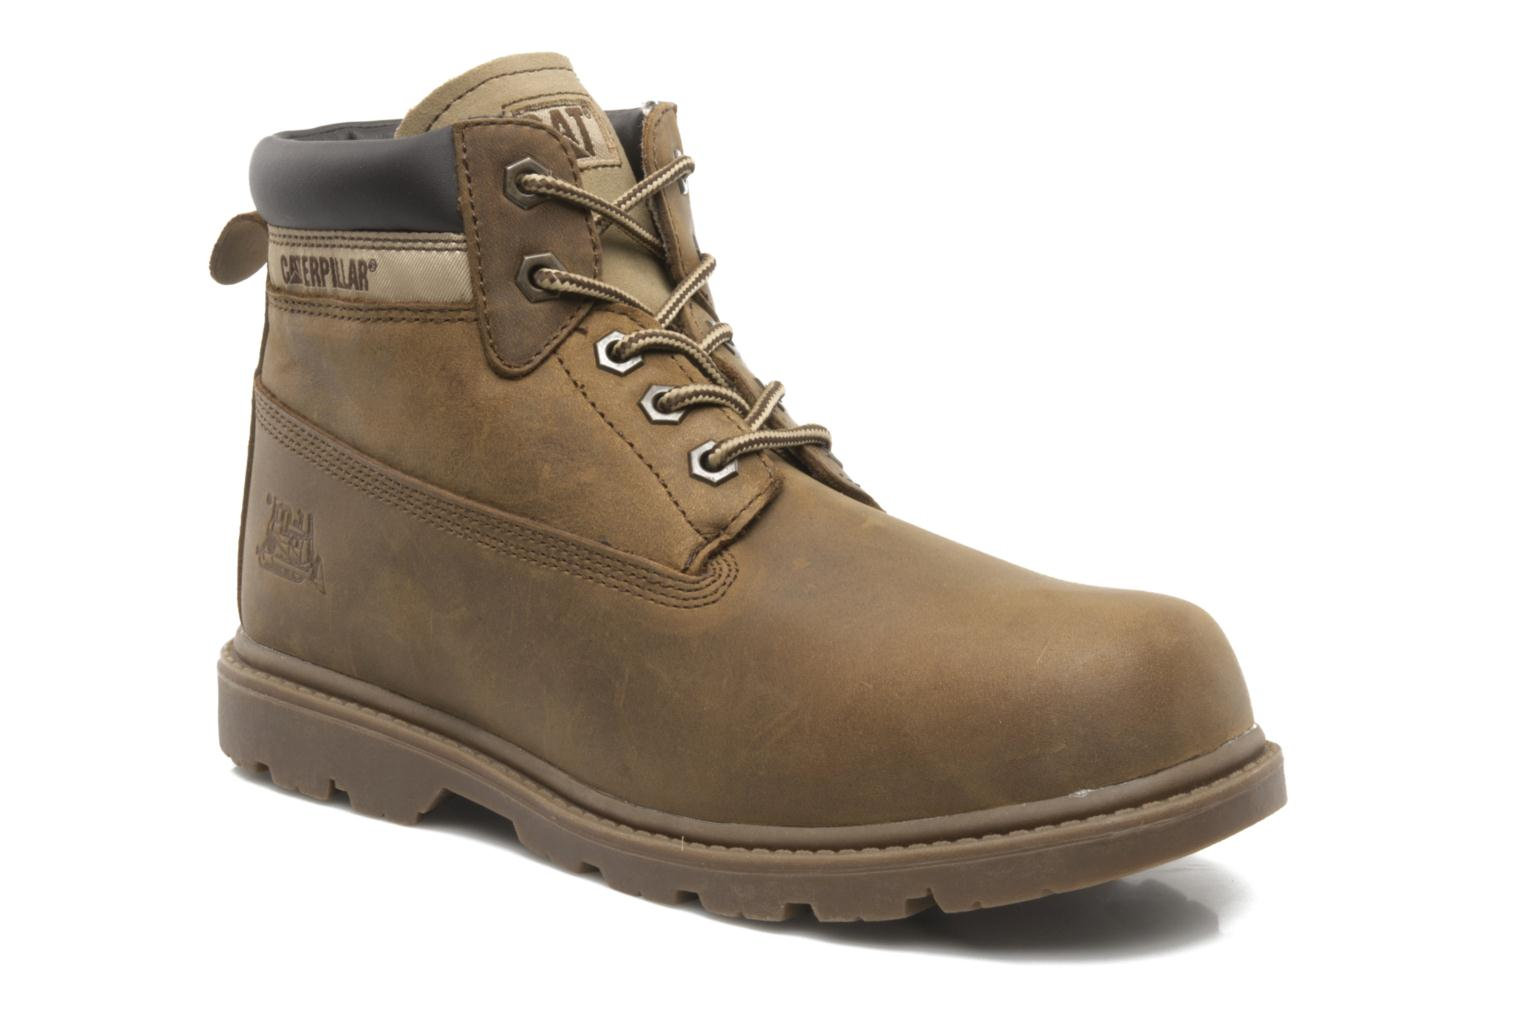 Bottines et boots Caterpillar Colorado Plus Marron vue détail/paire